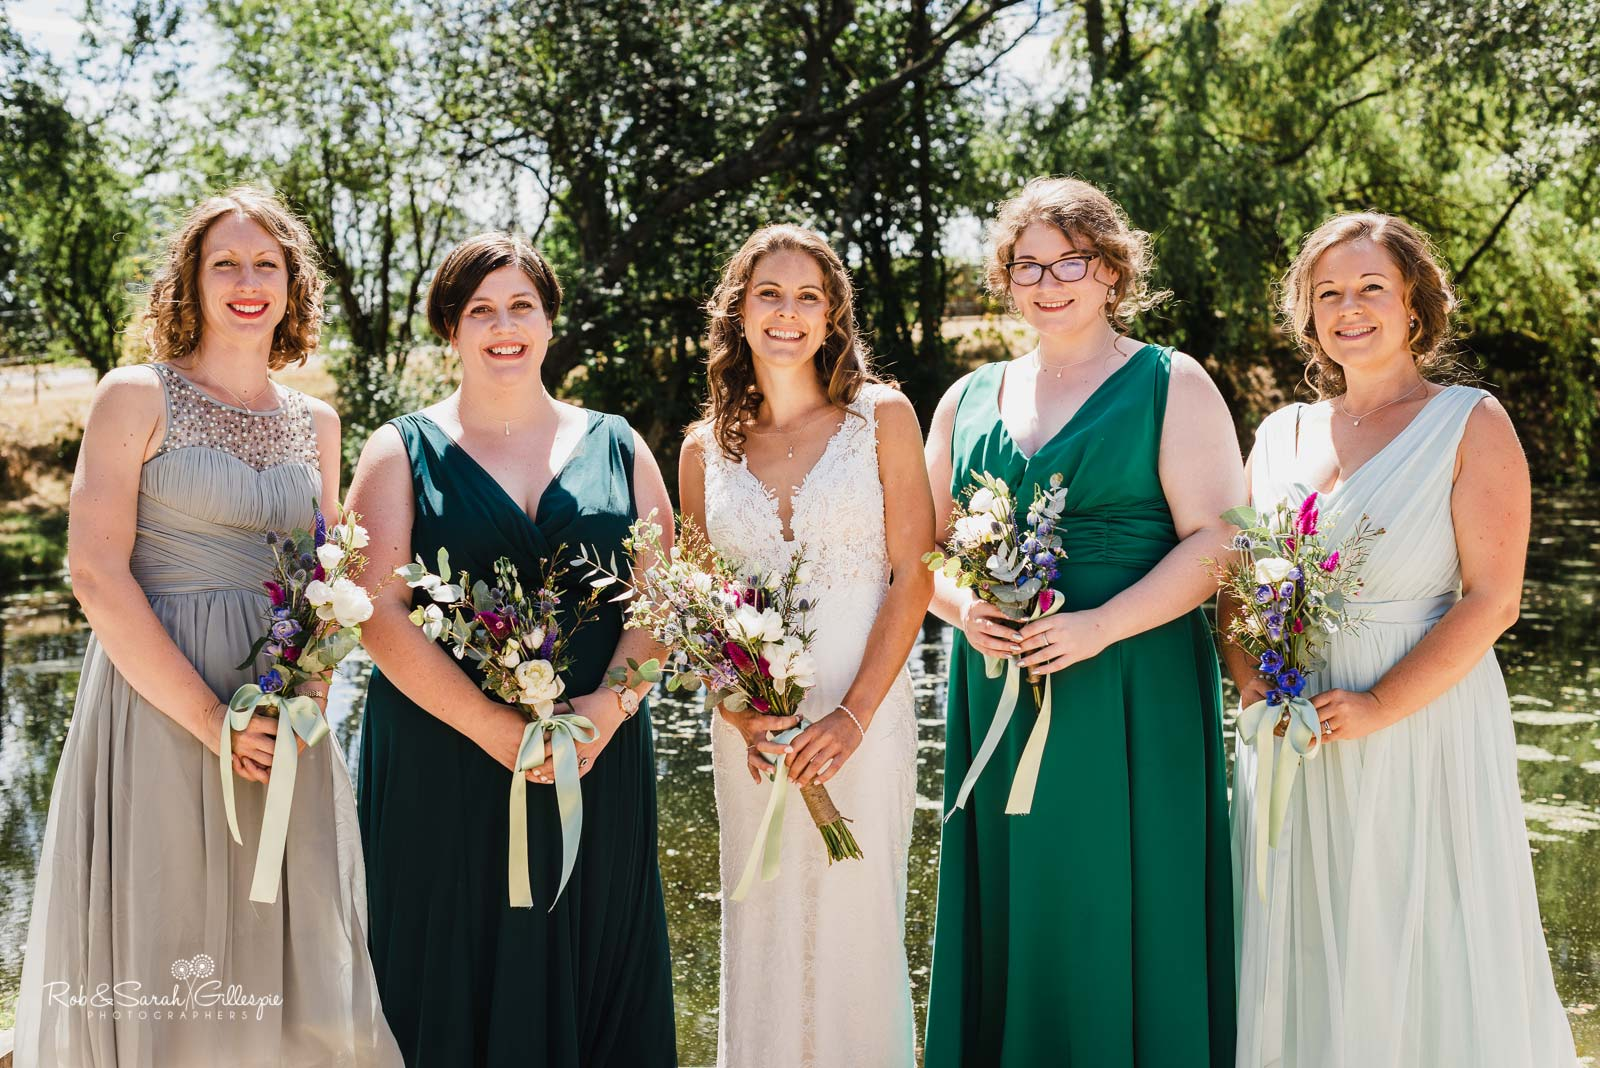 Group photo of bride and bridesmaids at Wethele Manor